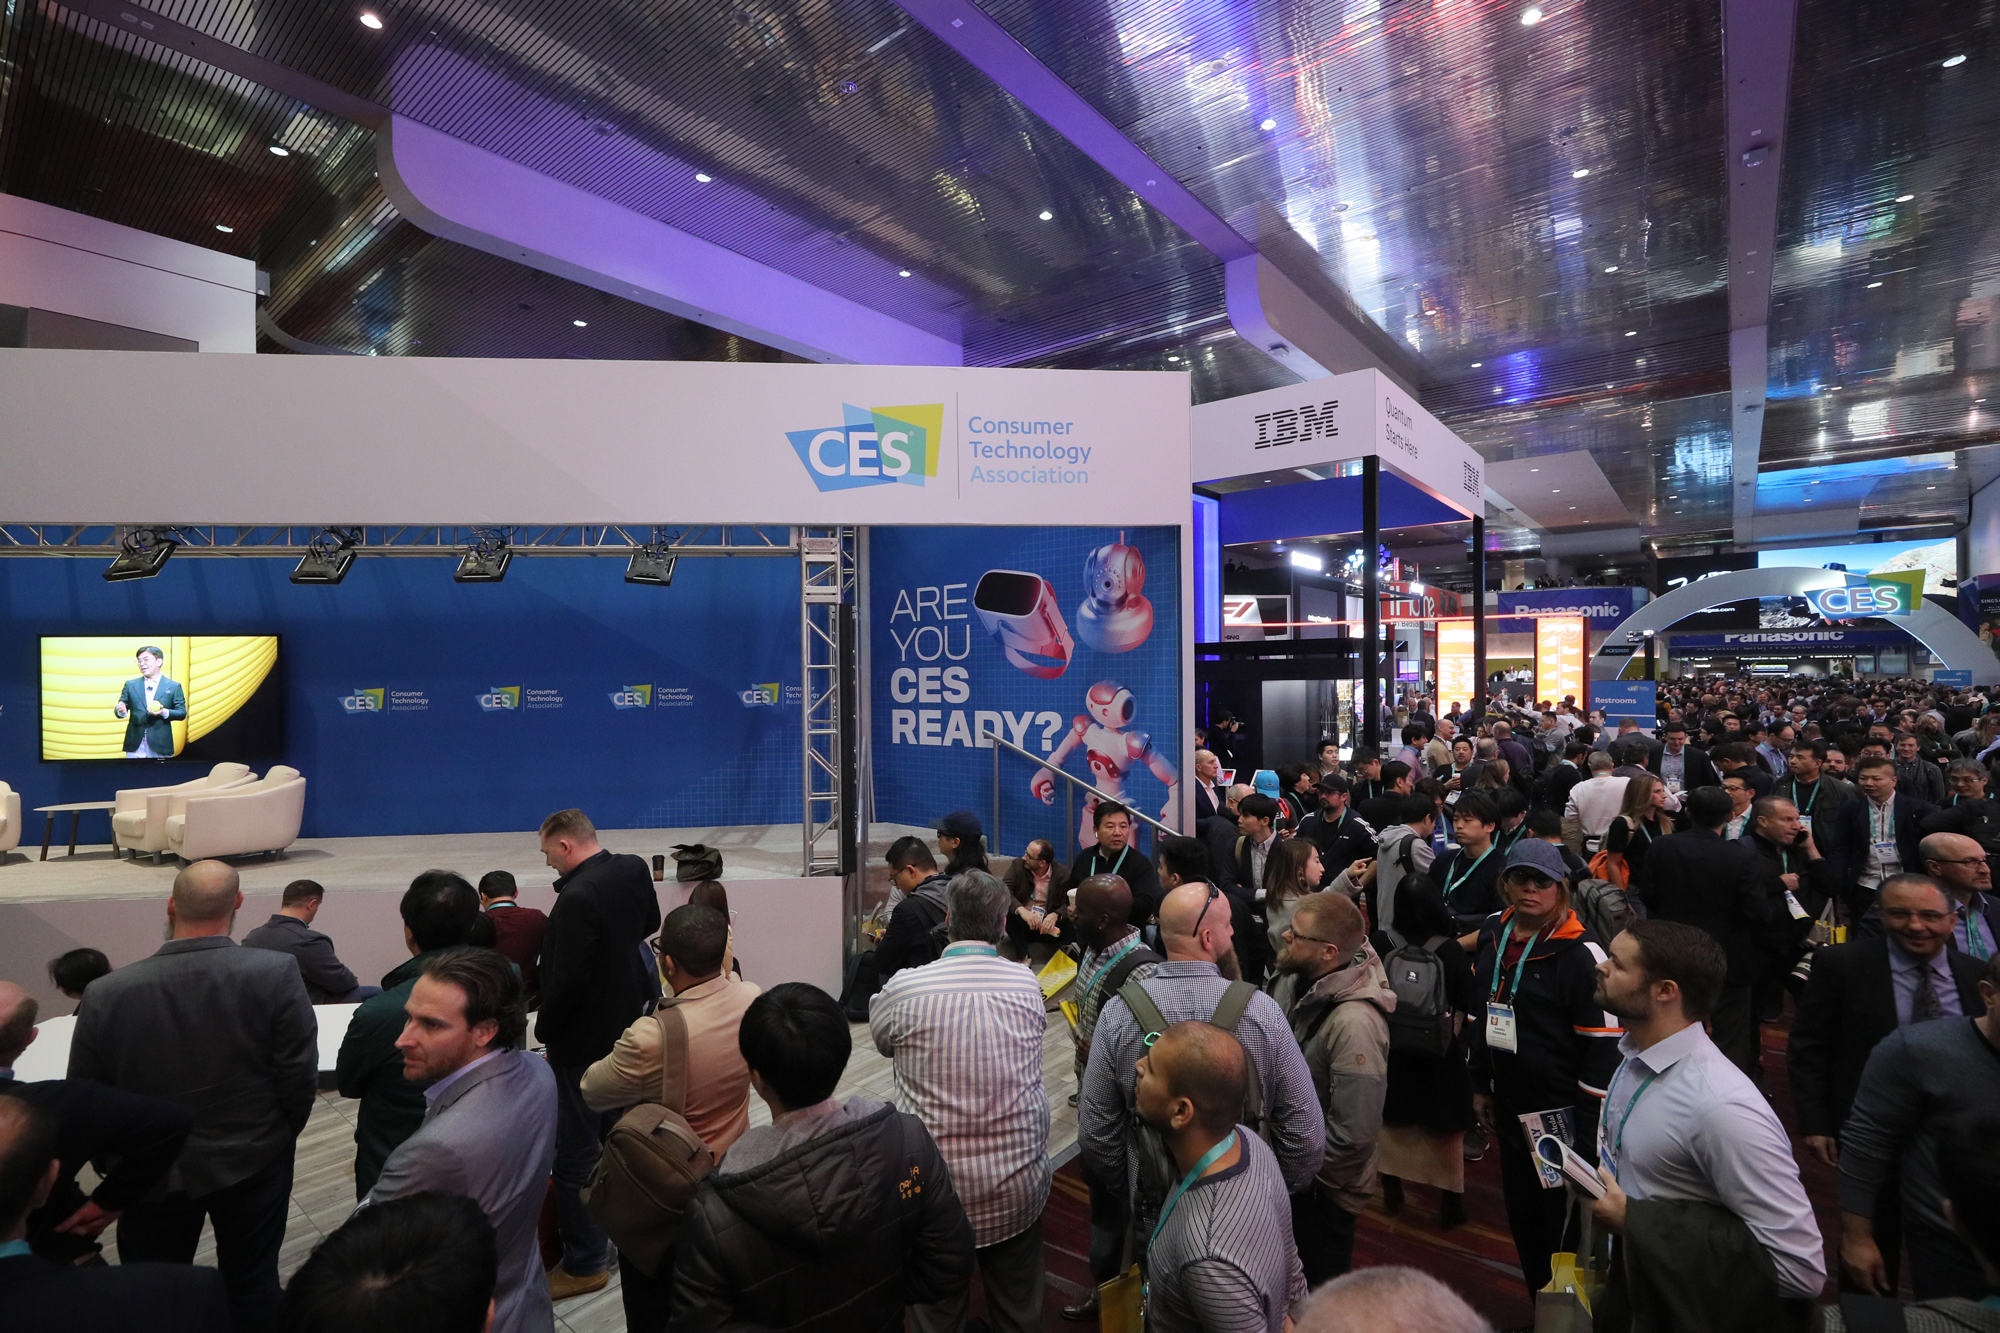 23 of the most entertaining (and revealing) tweets from CES